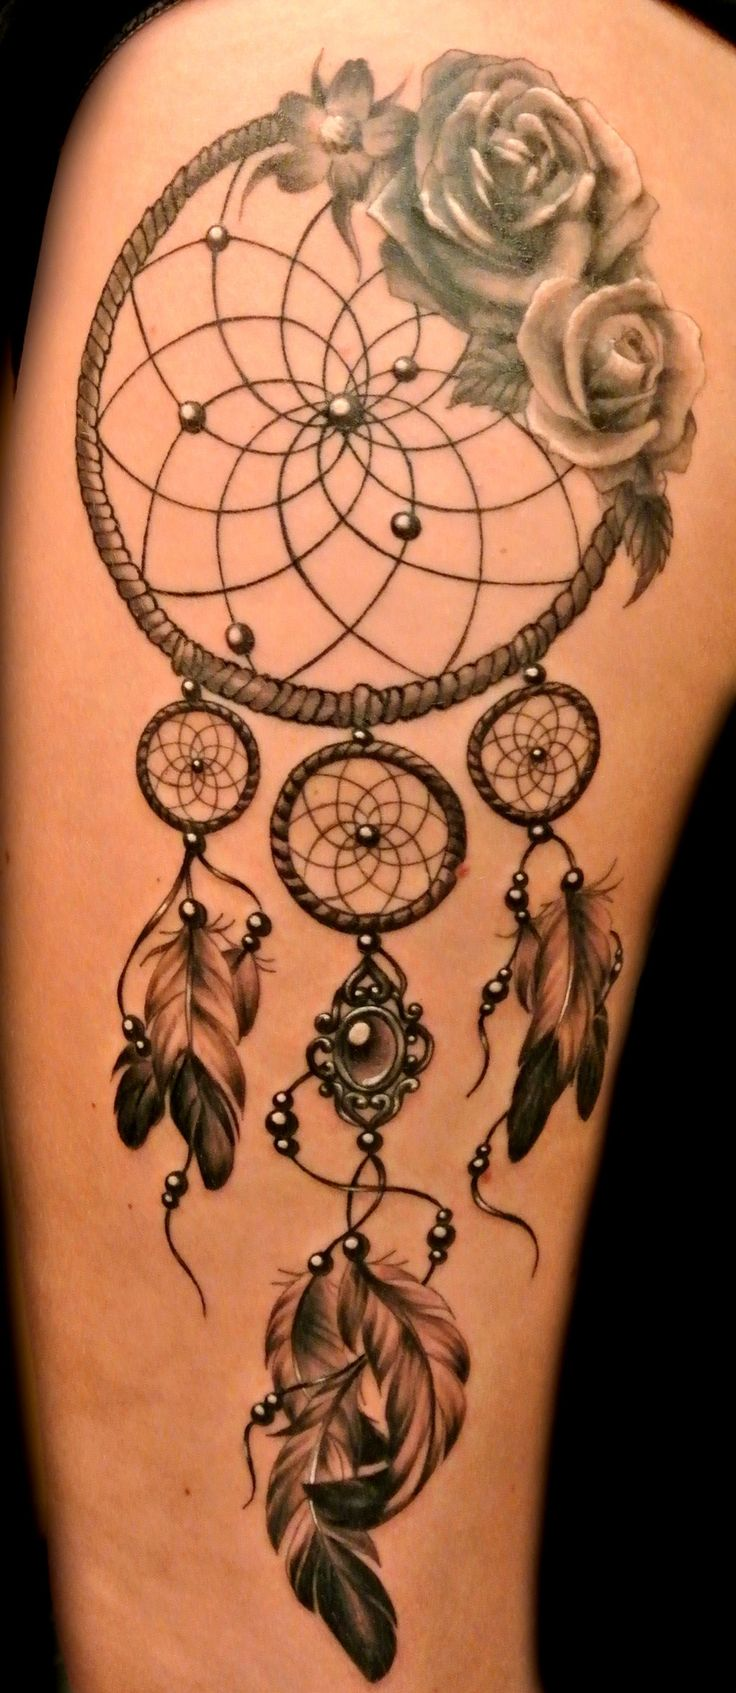 Not a dreamcatcher person but I like the sepia tones!